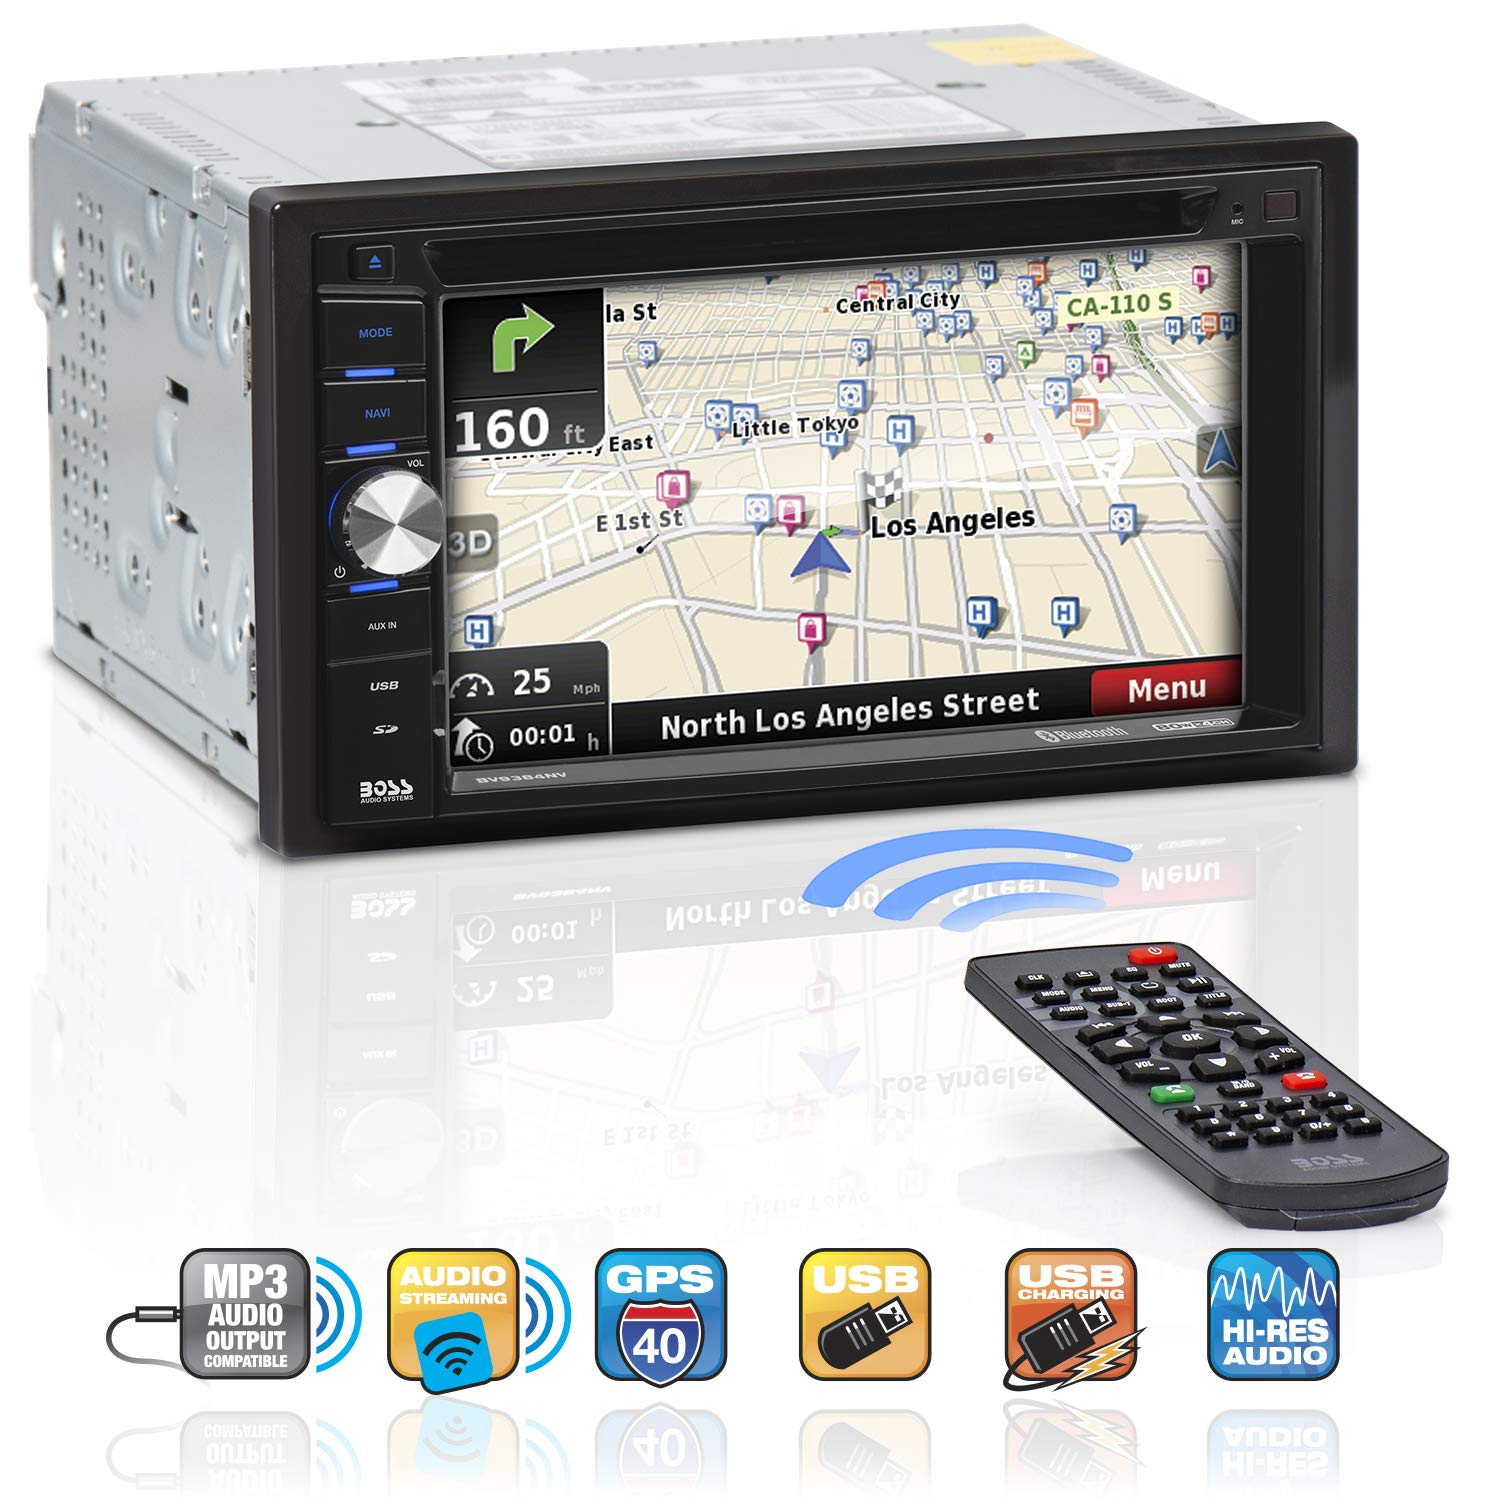 BOSS Audio BV9384NV Navigation - Double Din, Bluetooth Audio and Calling, 6.2 Inch LCD Touchscreen Monitor, Built-in Microphone, MP3 Player, CD / DVD Player, WMA, USB / SD Ports, AM/FM Radio Receiver